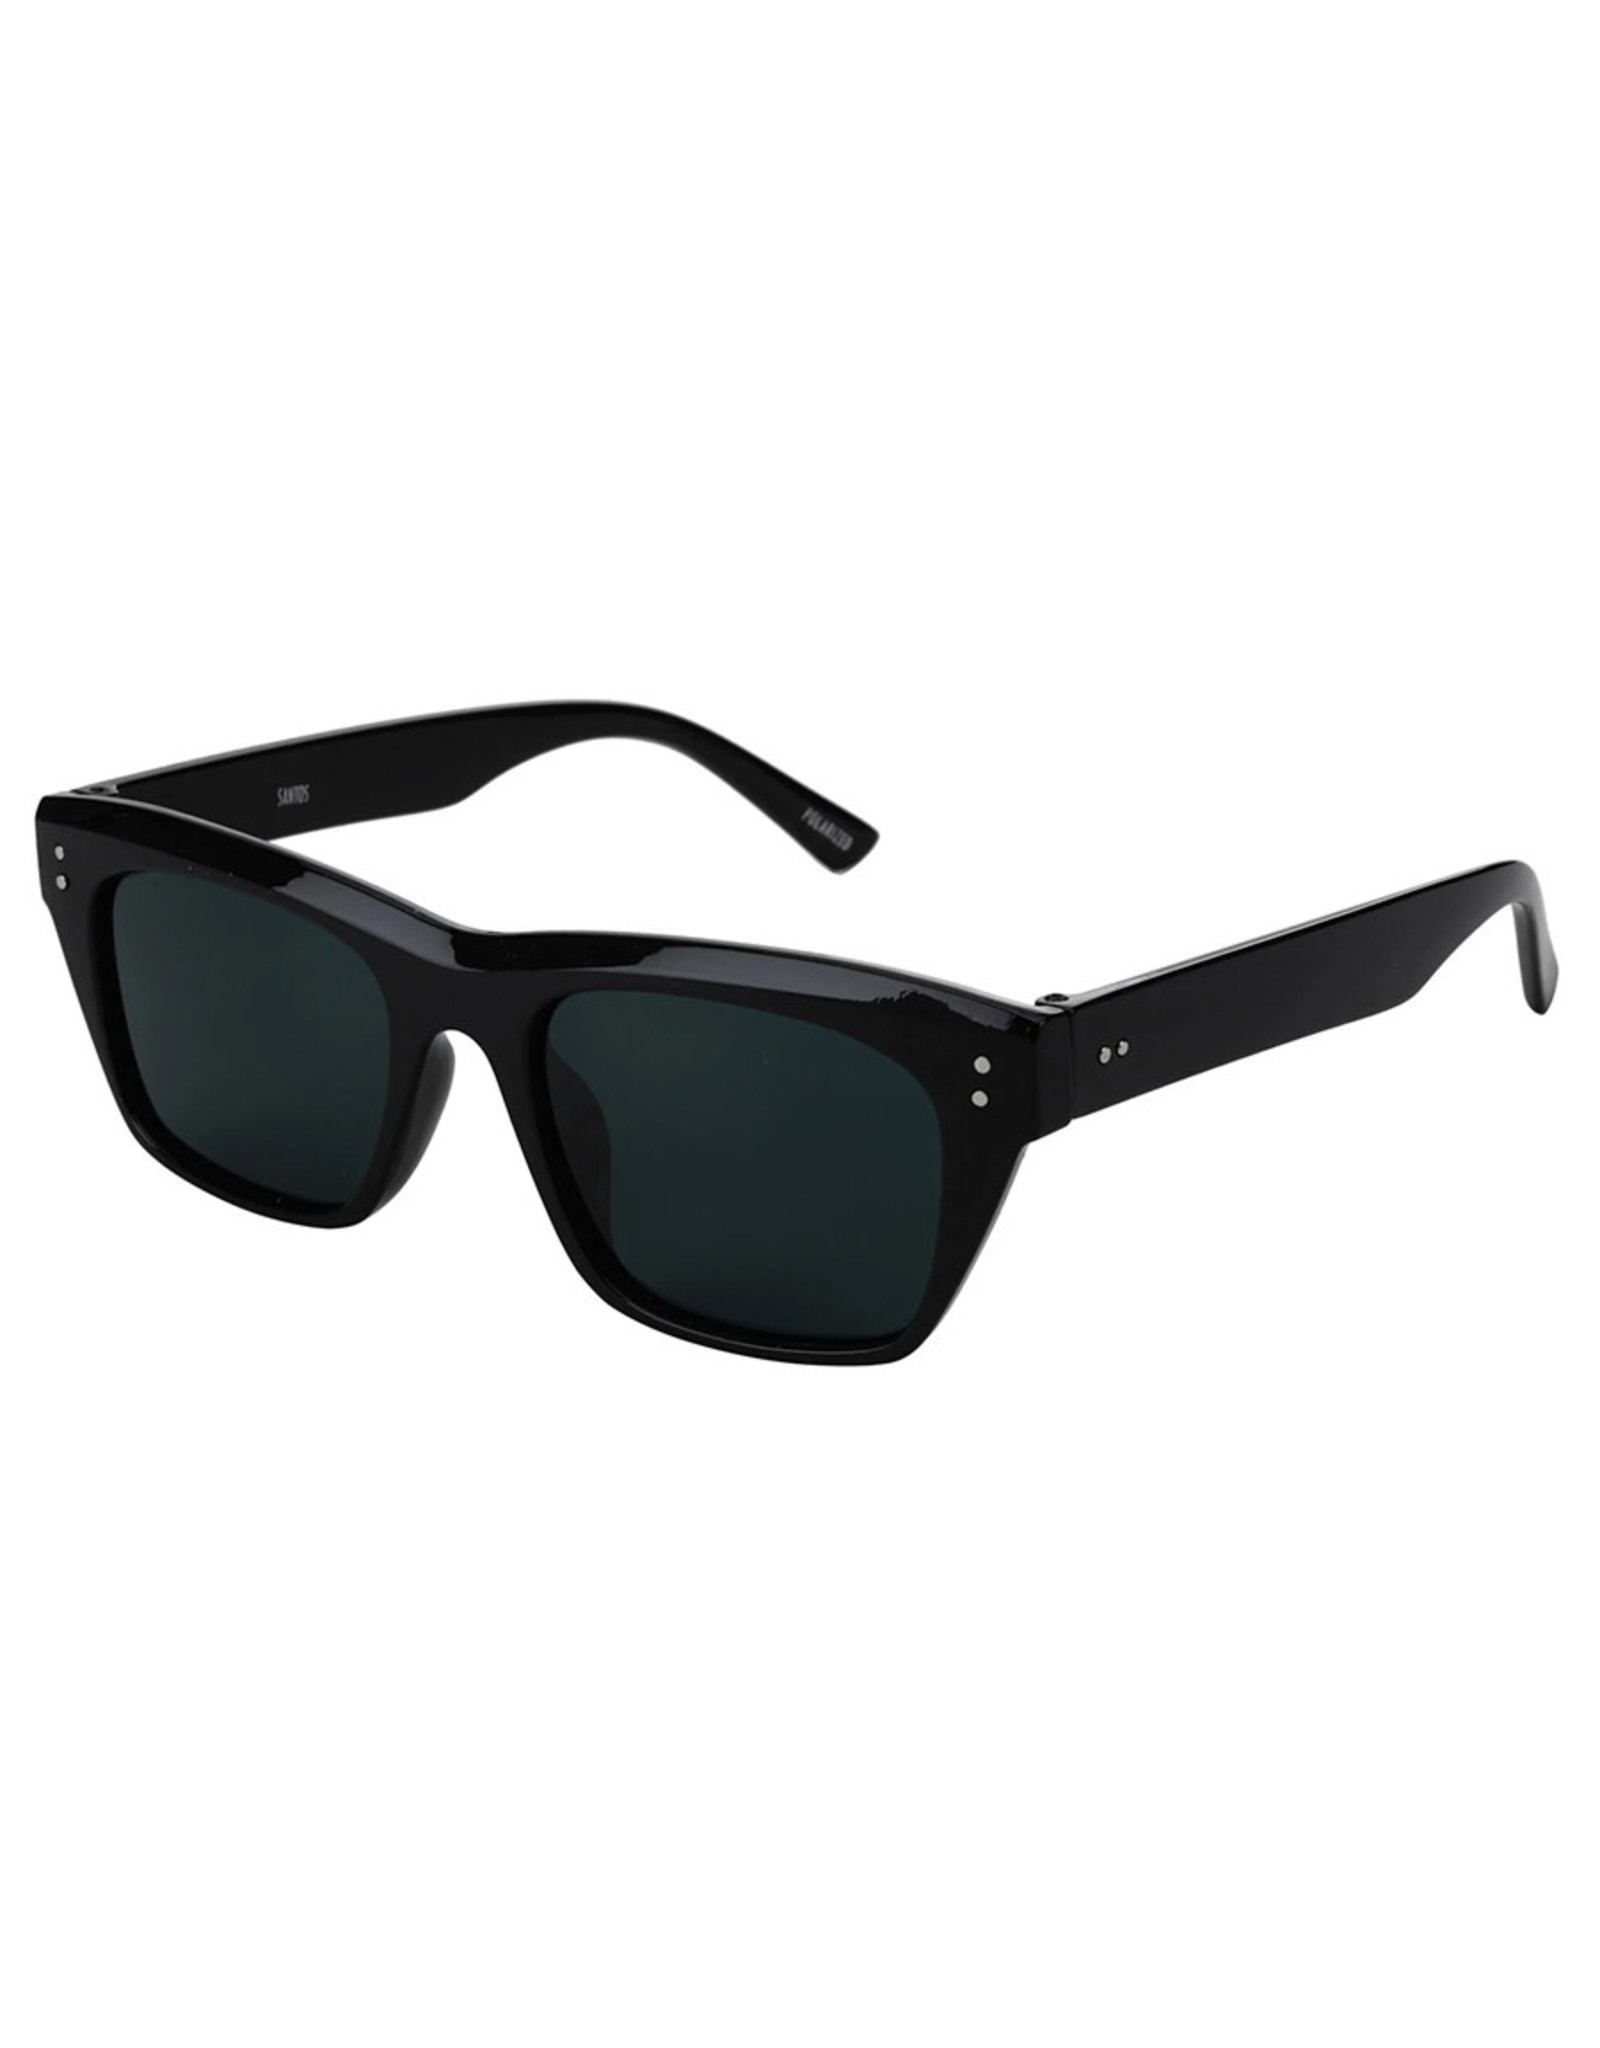 Glassy Sunglasses Glassy Sunglasses Santos (Black Gloss/Grey Polarized Lens)